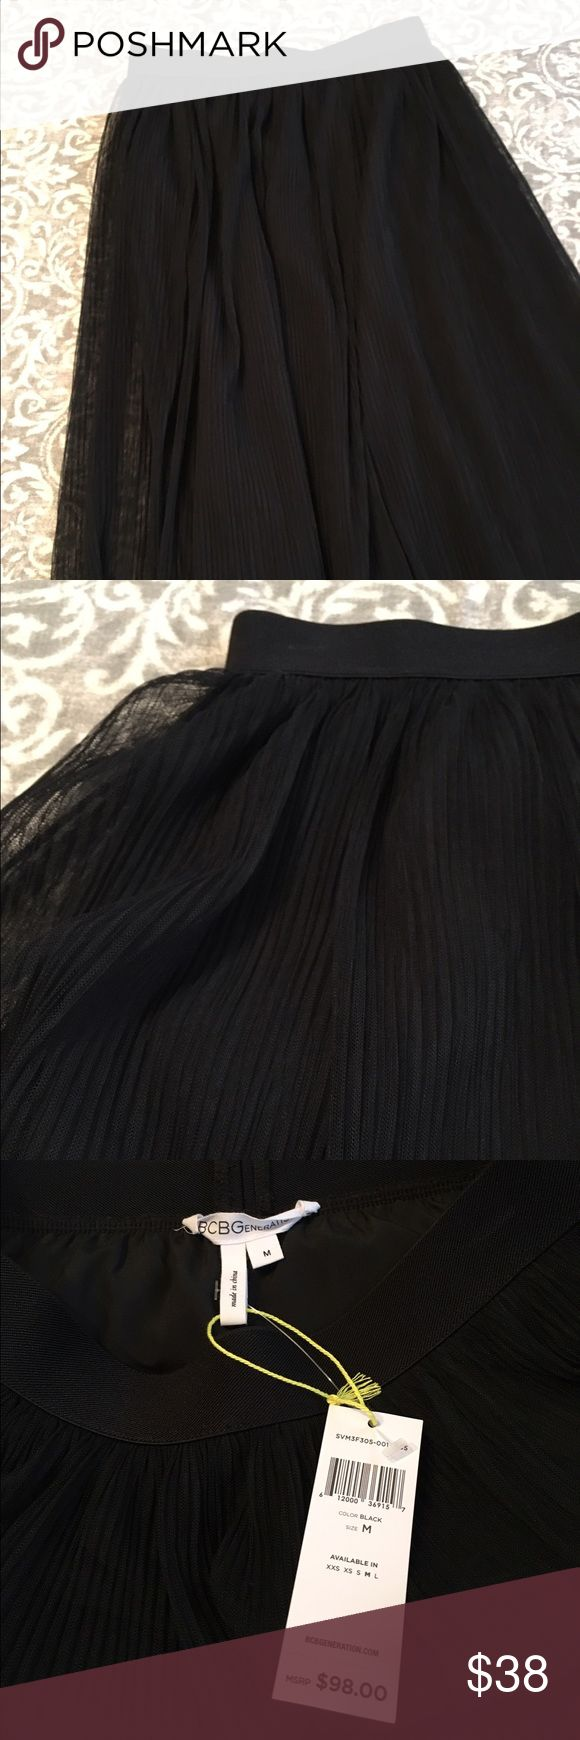 Tulle Skirt BCBGeneration Black tulle skirt. Pull on style with elastic waist. BCBGeneration Skirts